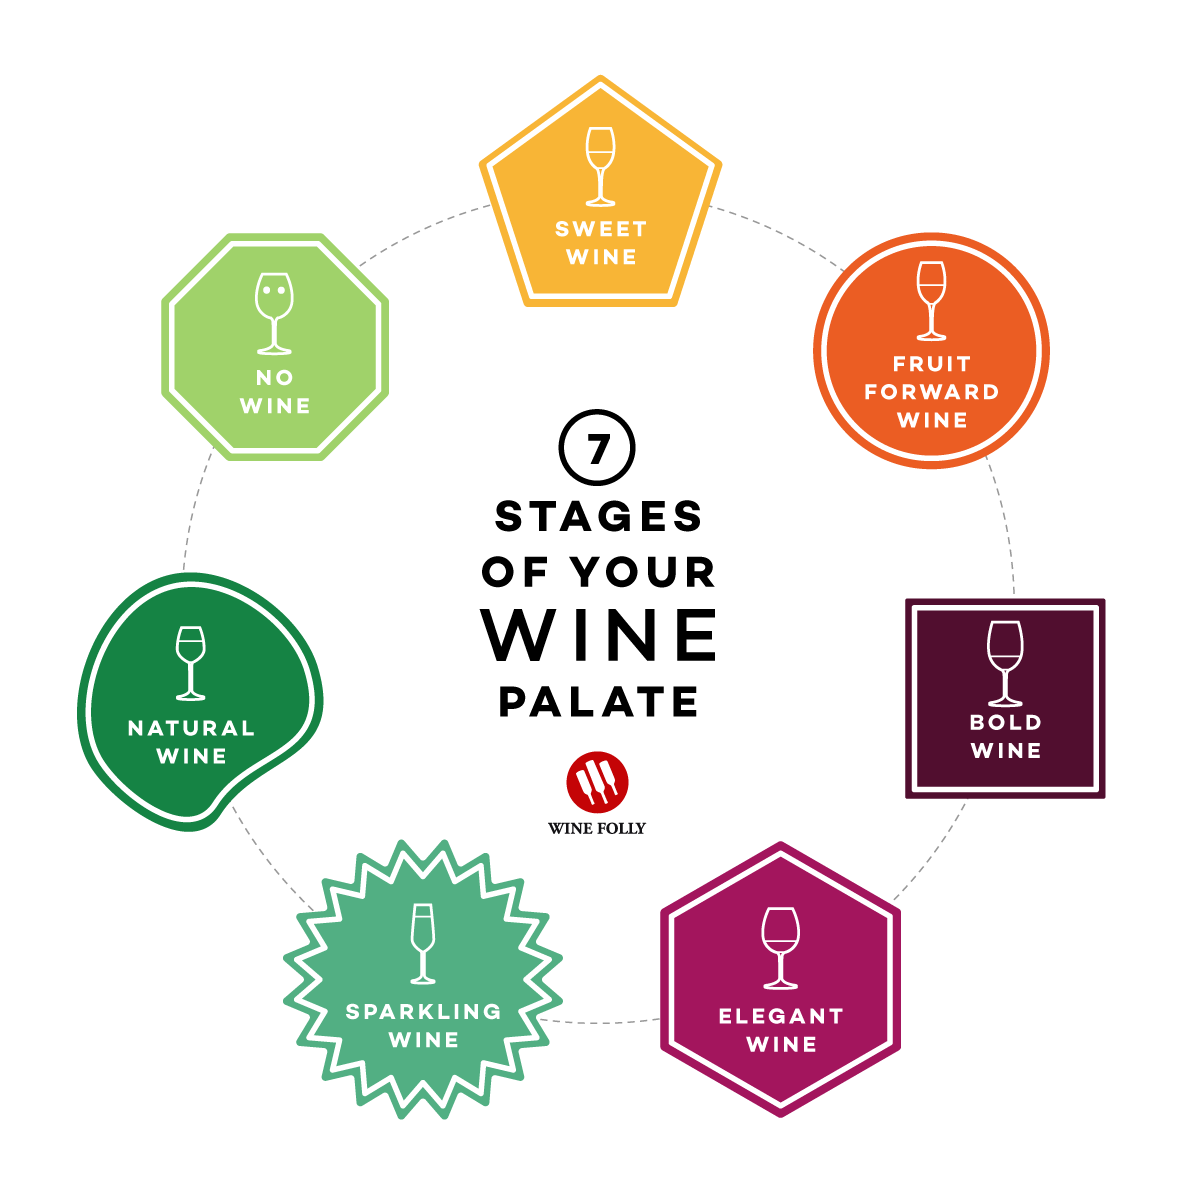 The 7 Stages of Your Wine Palate by Wine Folly